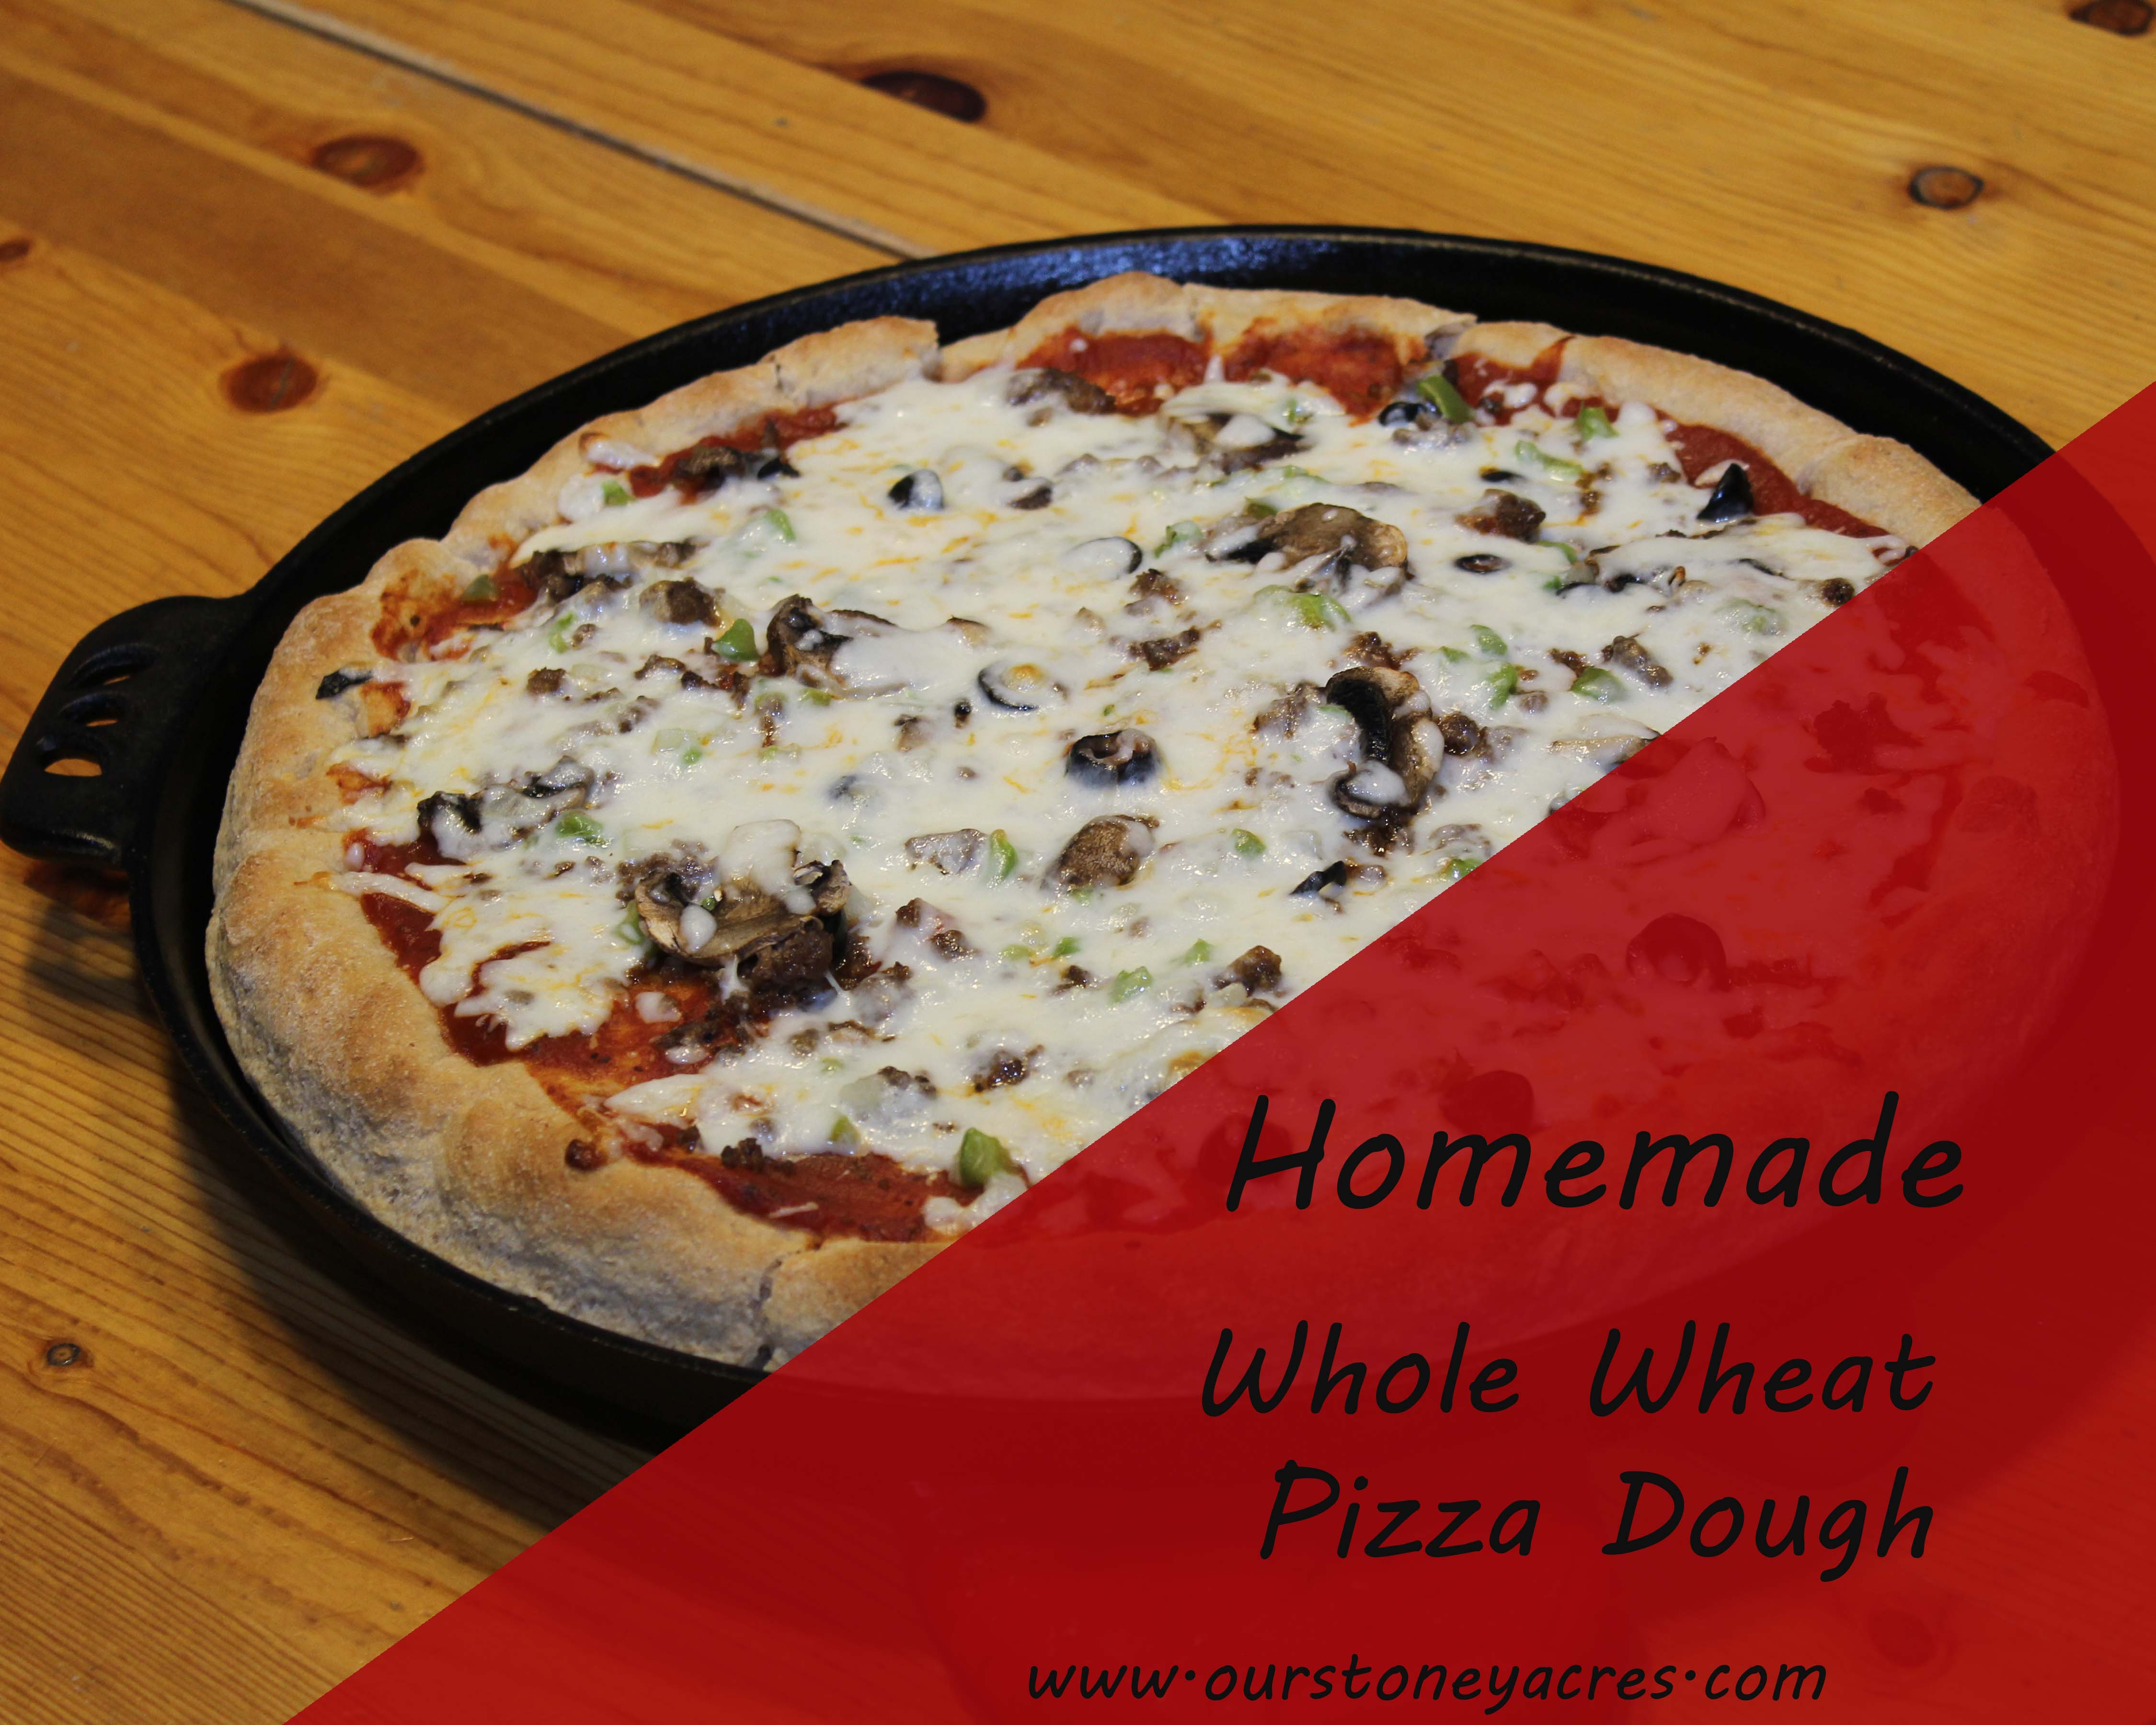 Homemade whole wheat pizza dough - Stoney Acres